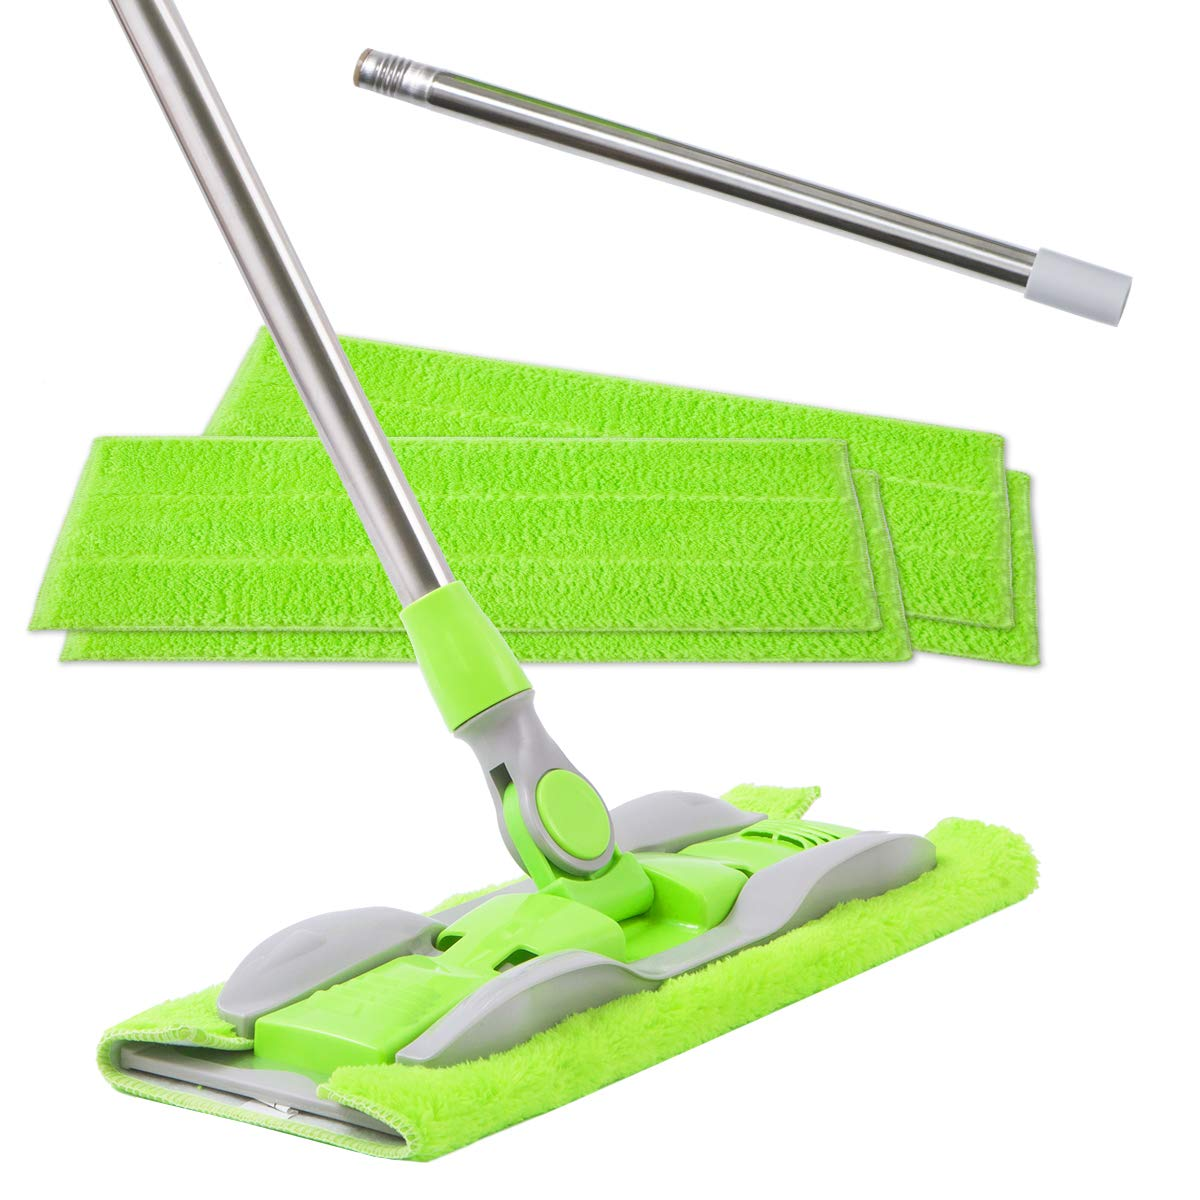 ITSOFT Microfiber Hardwood Floor Mop - 5 Reusable Flat Mop Pads and Adjustable Stainless Steel Handle, for Wet or Dry Floor Cleaning